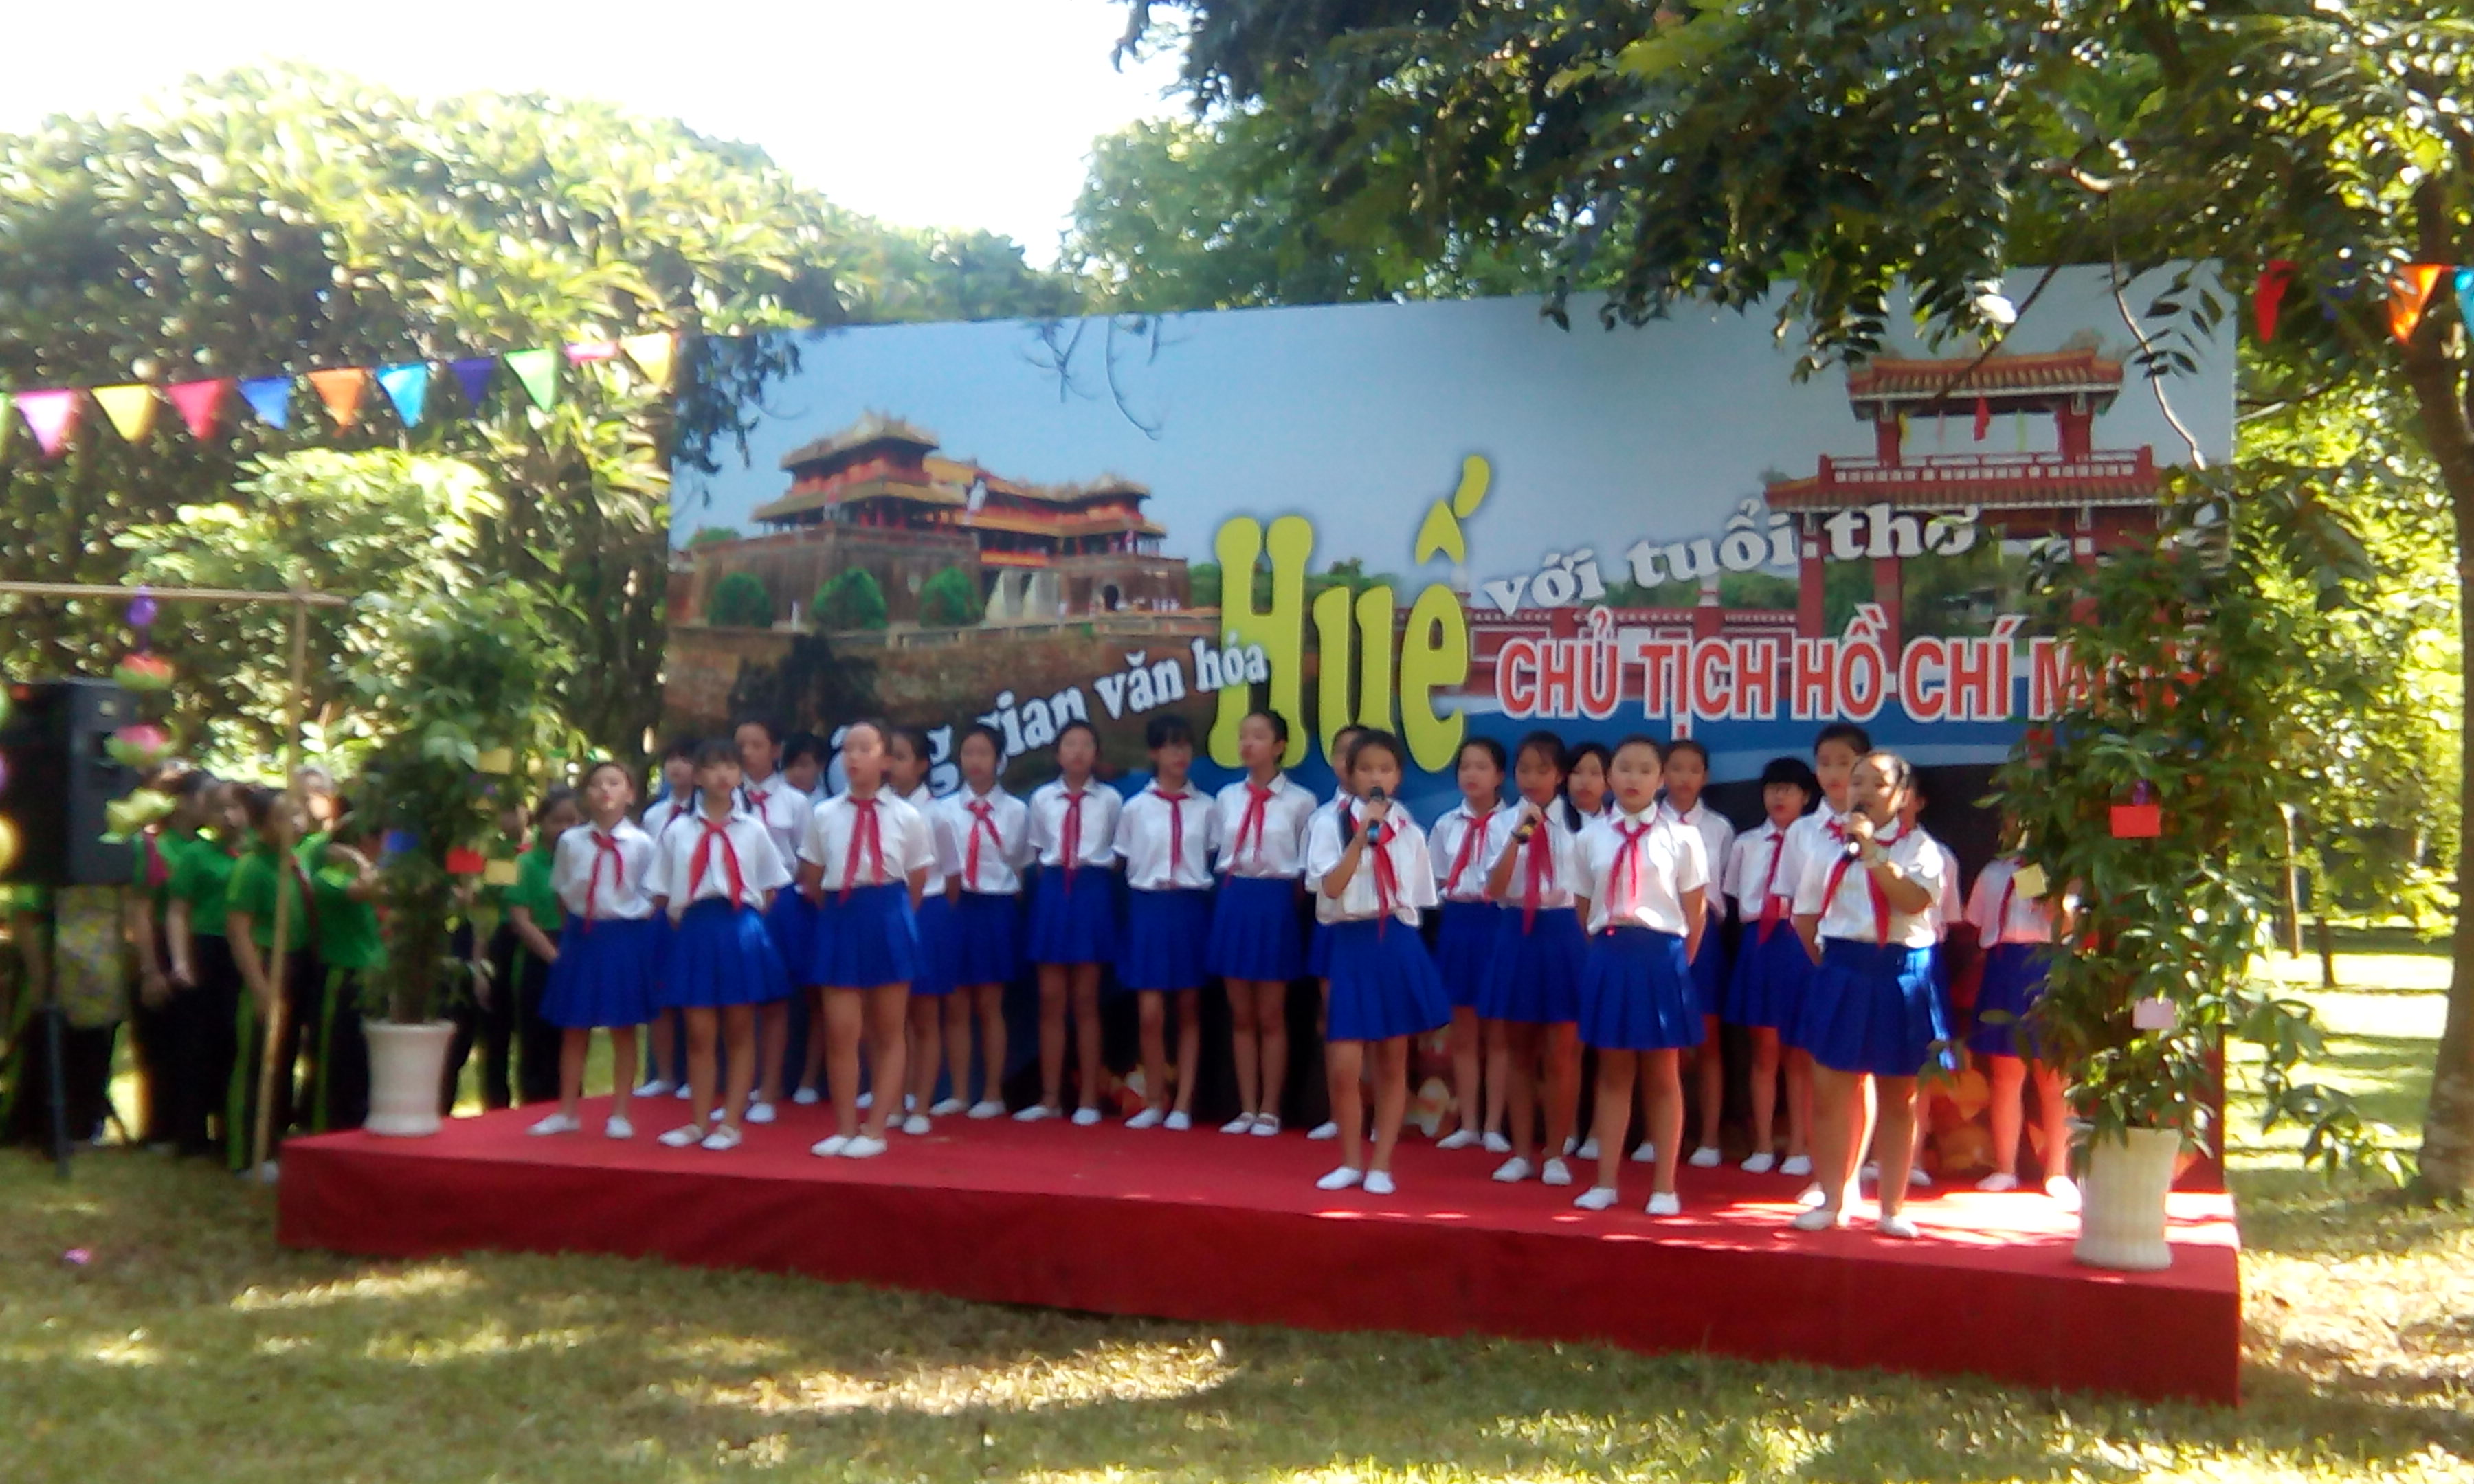 Hue cultural space and President Ho Chi Minh's childhood